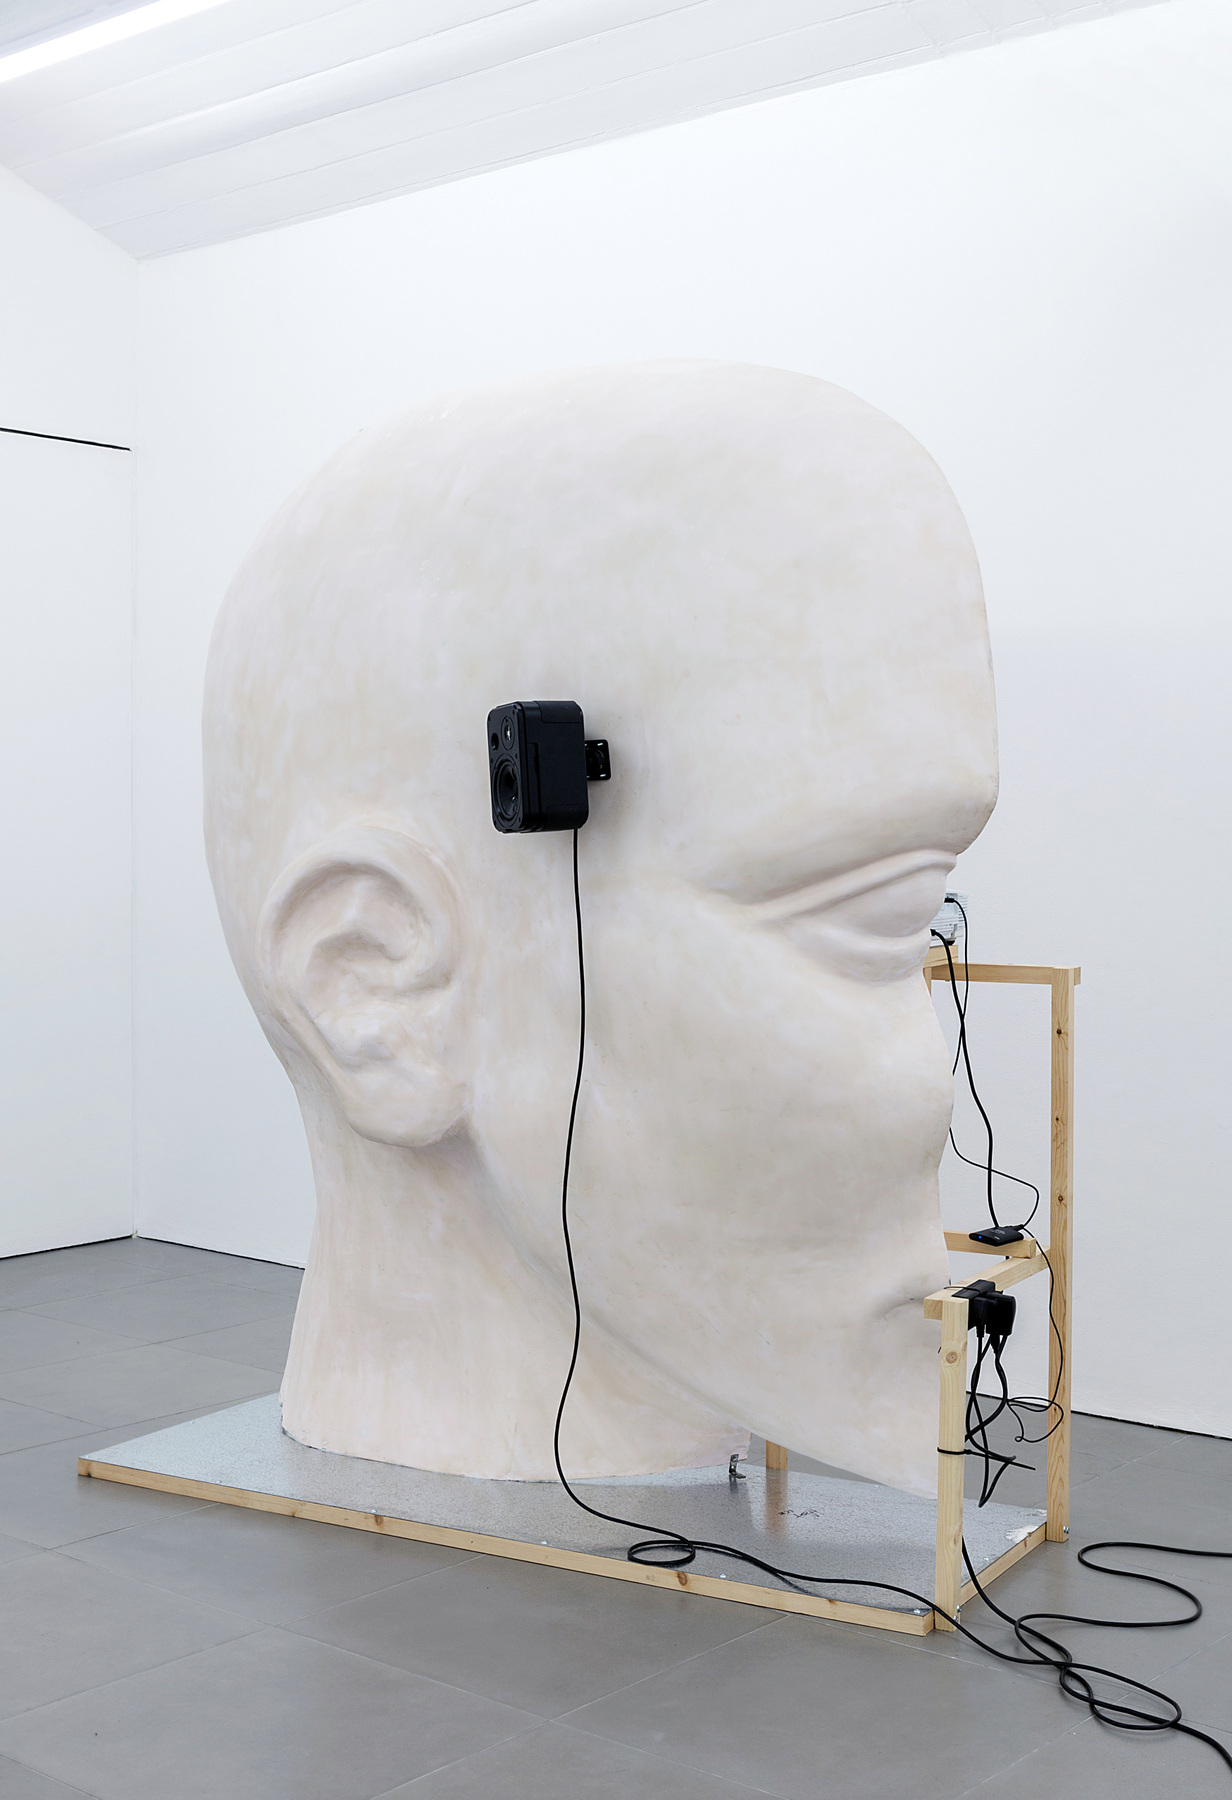 06. Anne de Vries, SUBMISSION 2015, wood, metal, fibreglass resin, audio, video